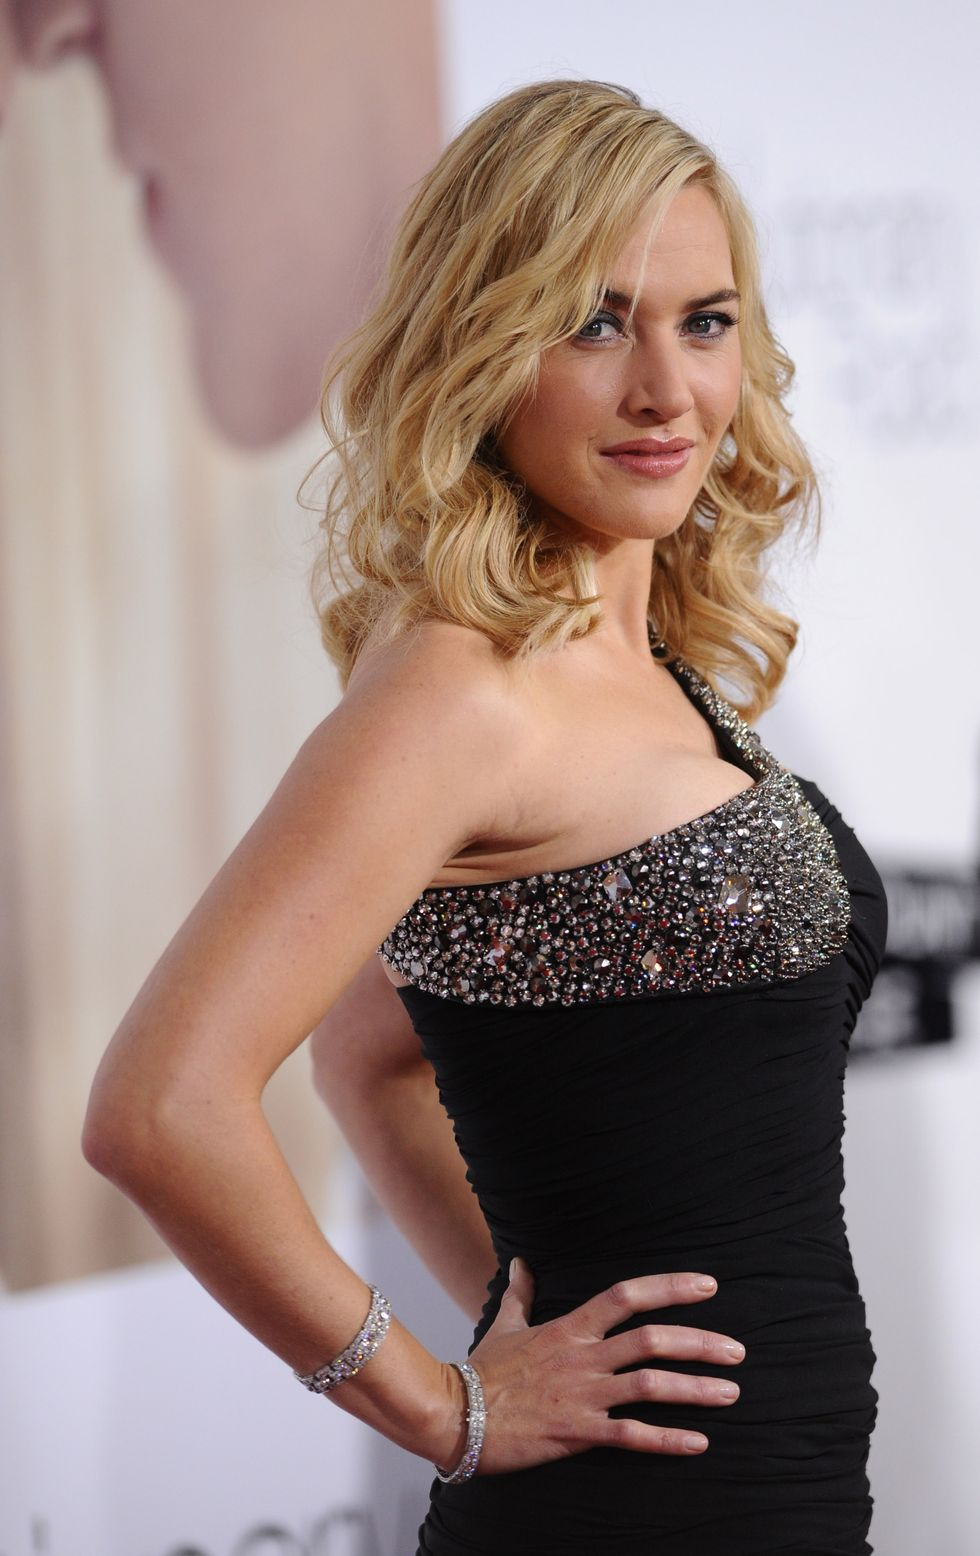 Kate Winslet Hot Pics   Hollywood Celebrity Hot Wallpapers Kate Winslet